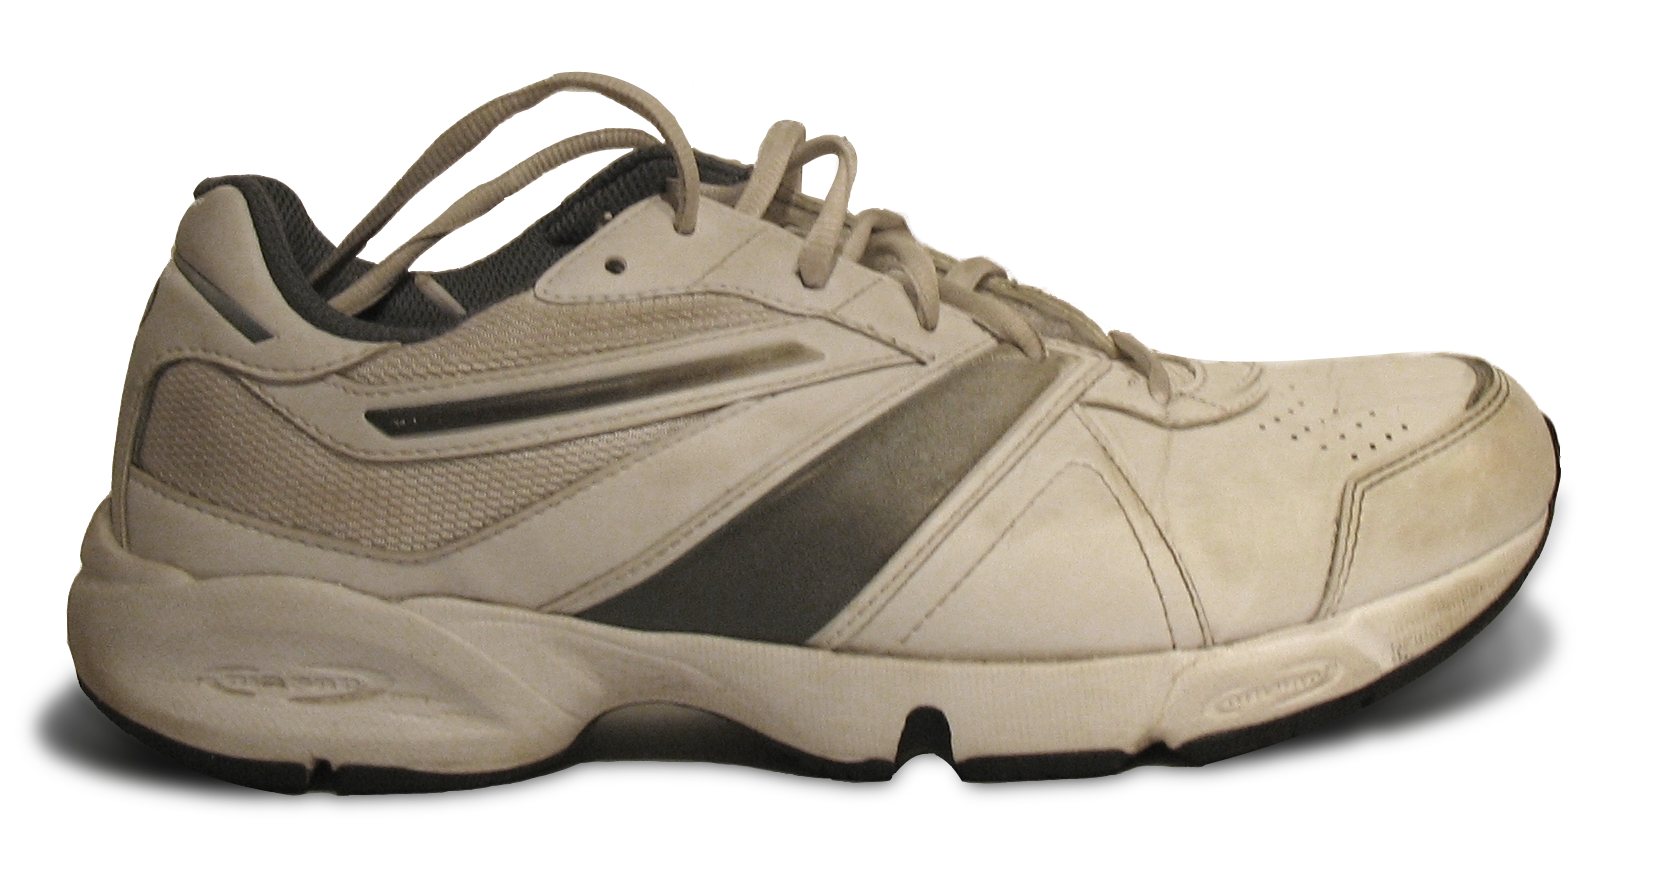 shoes sport right single png